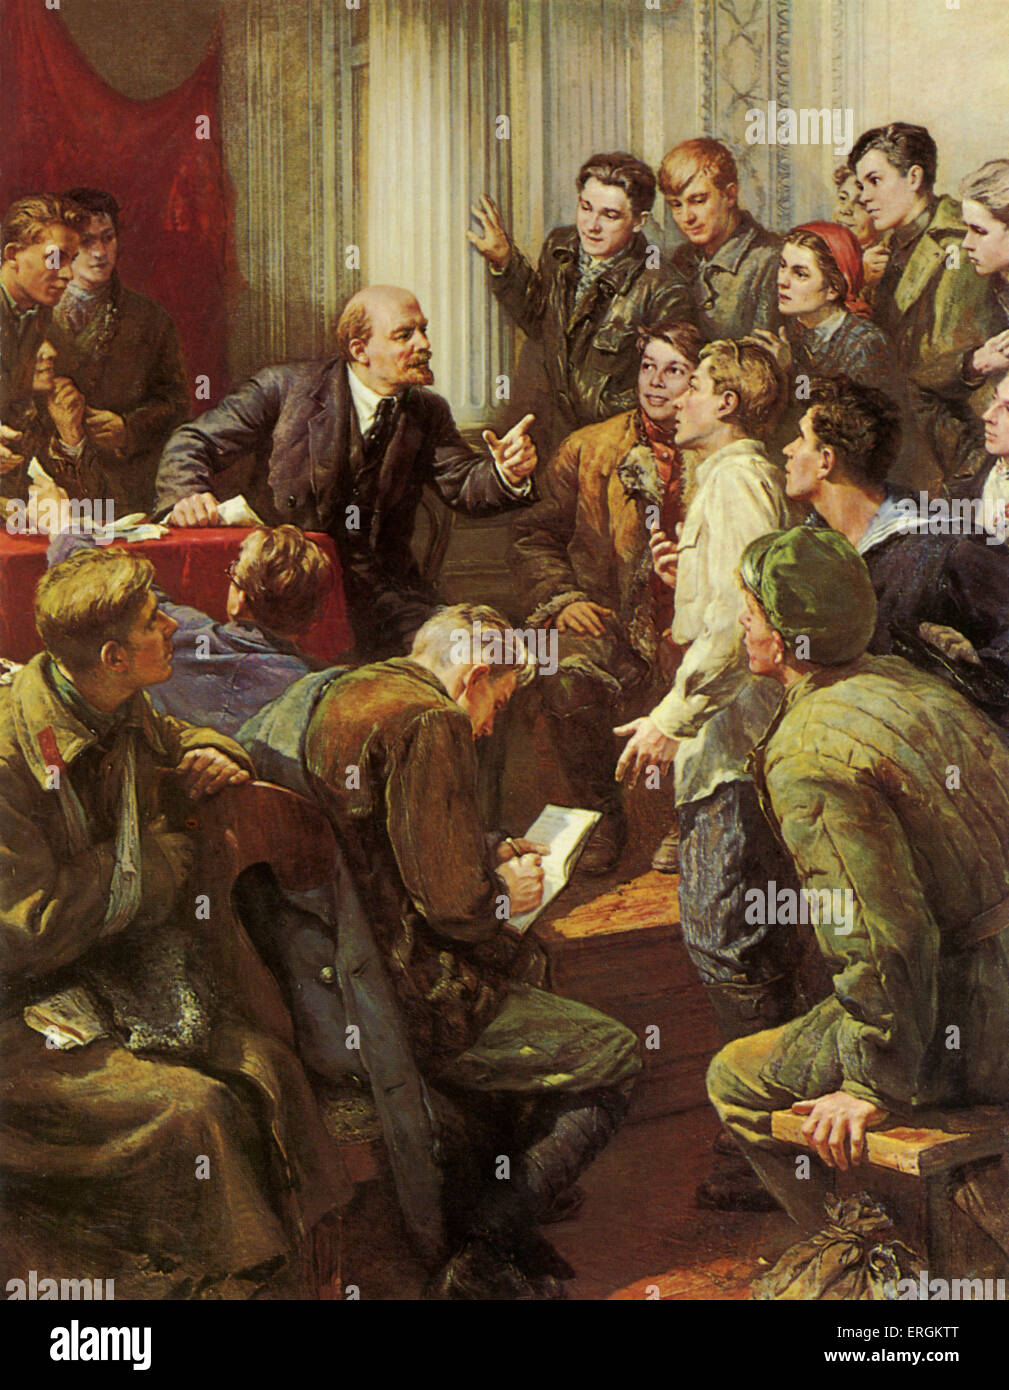 Lenin (1870-1924) surrounded by soviet youth. Here lenin holds a talk on his complete works to representatives of - Stock Image